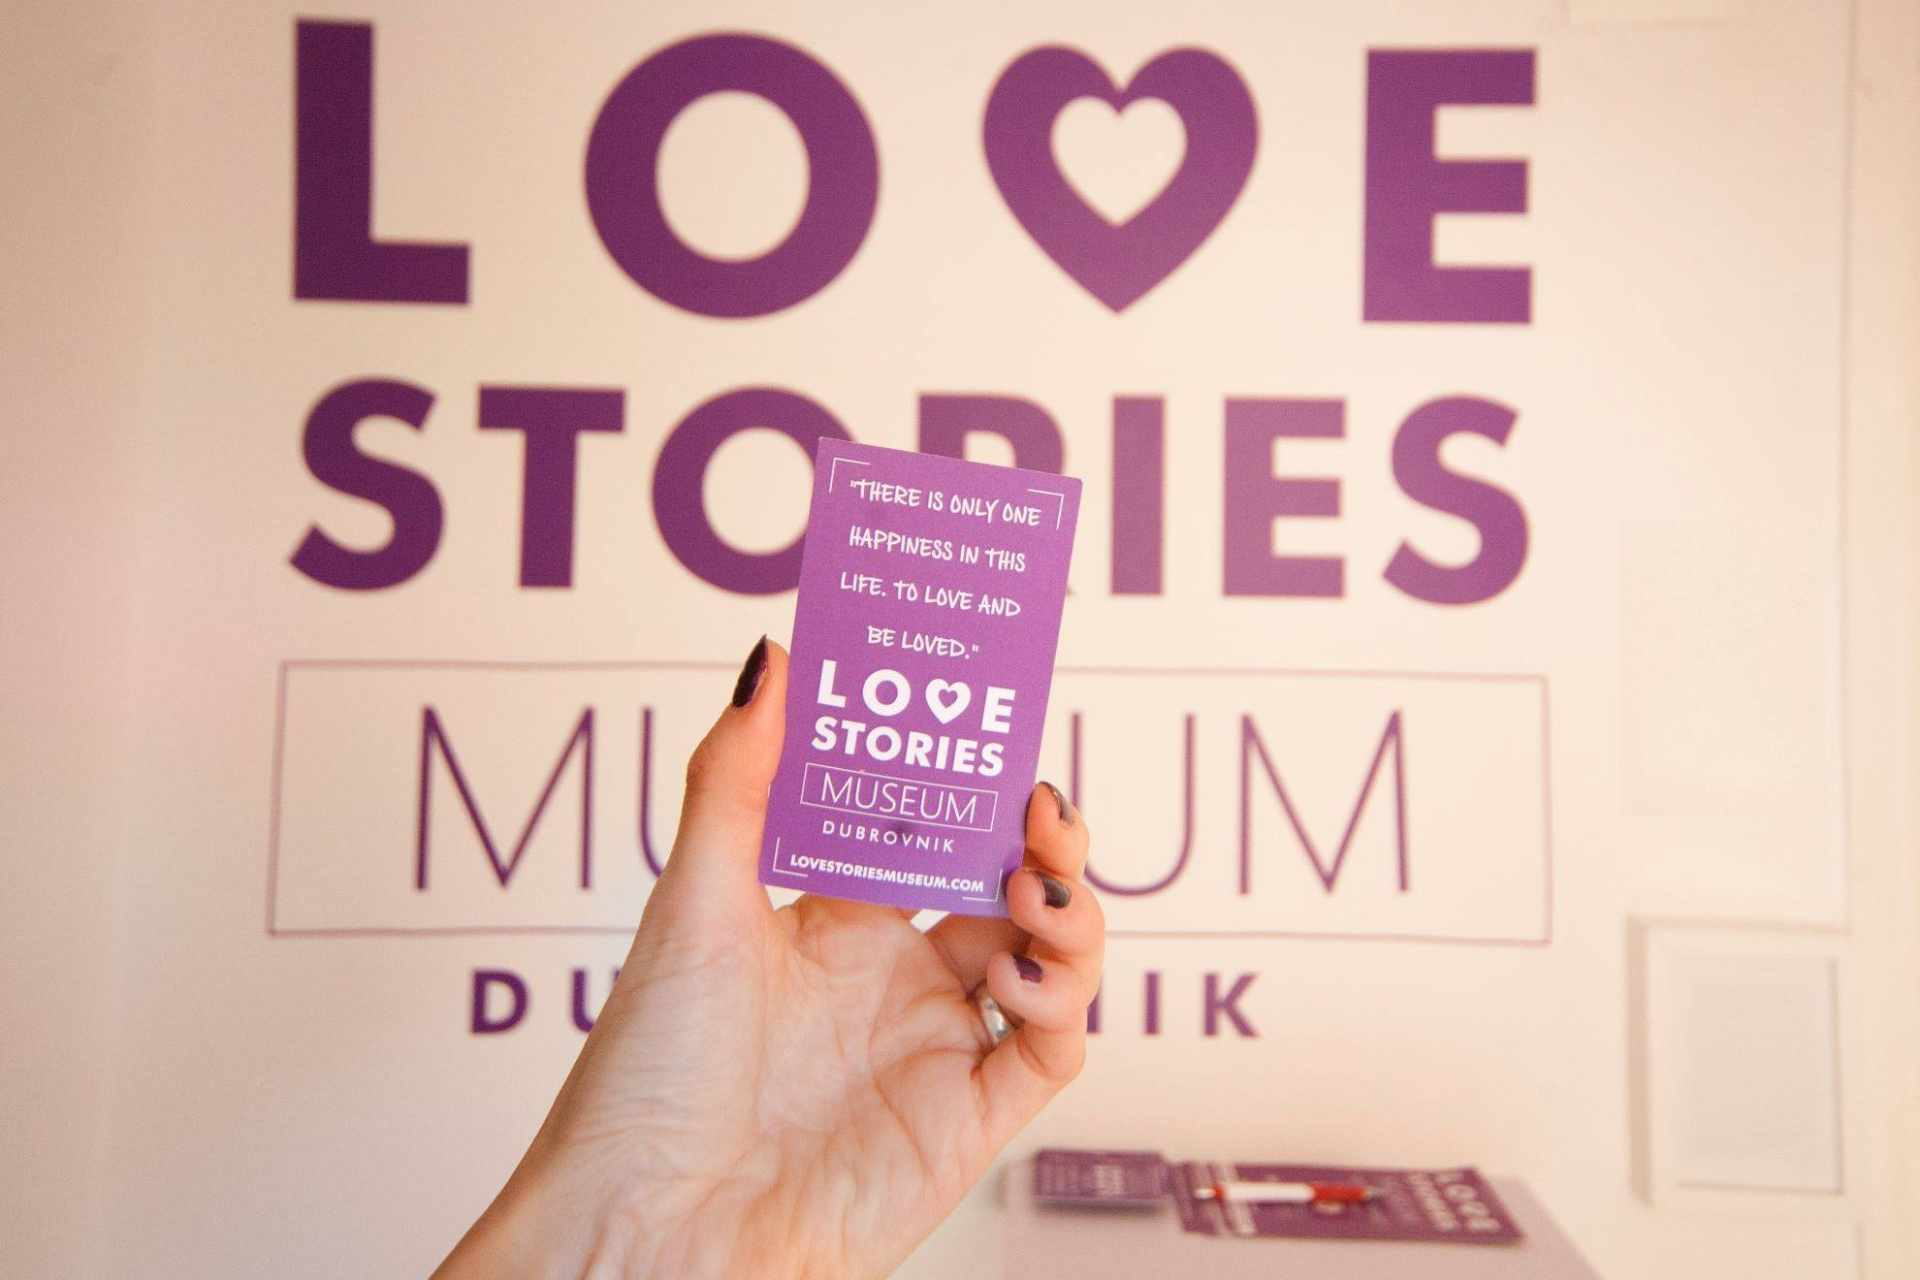 hand-holding-purple-ticket-to-love-stories-museum-in-front-of-museum-sign